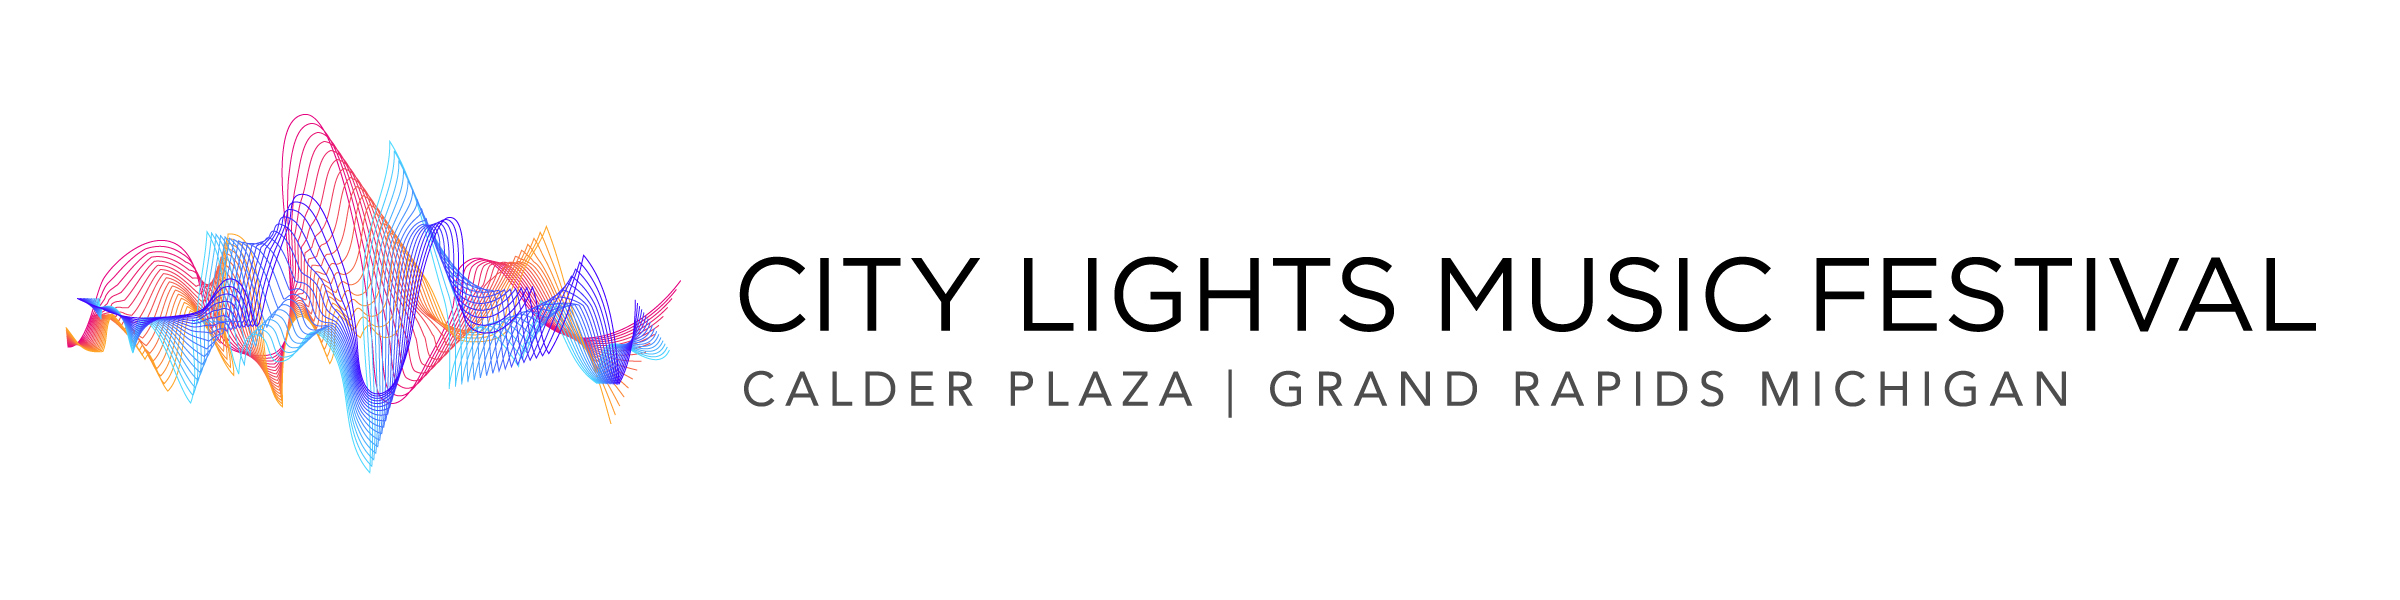 Tickets for City Lights Music Festival in Grand Rapids from ShowClix